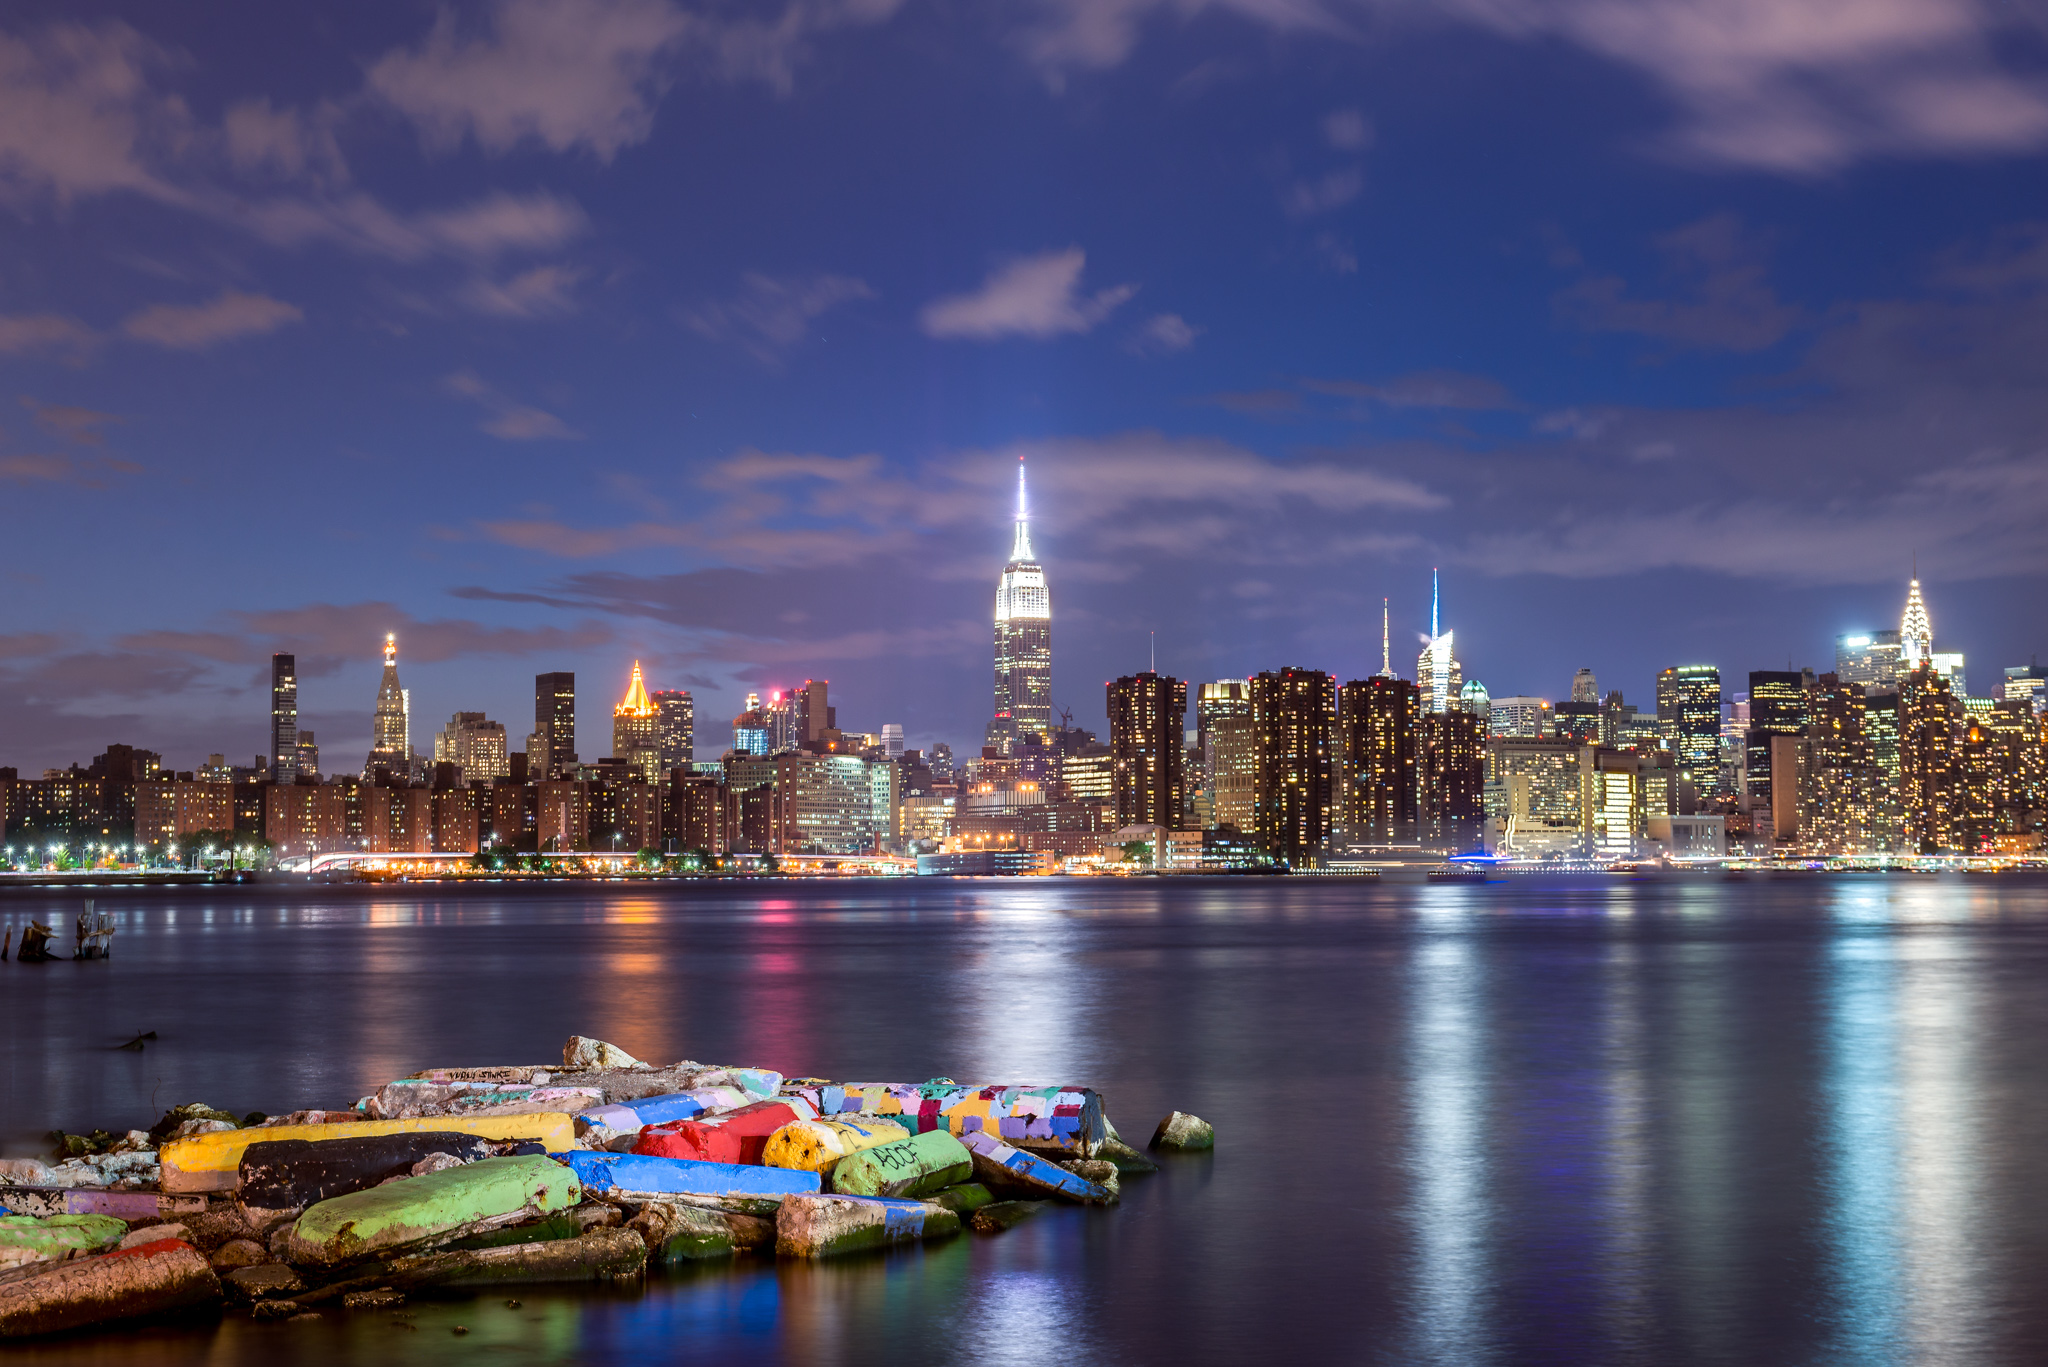 East River State Park - View towards Manhattan, USA